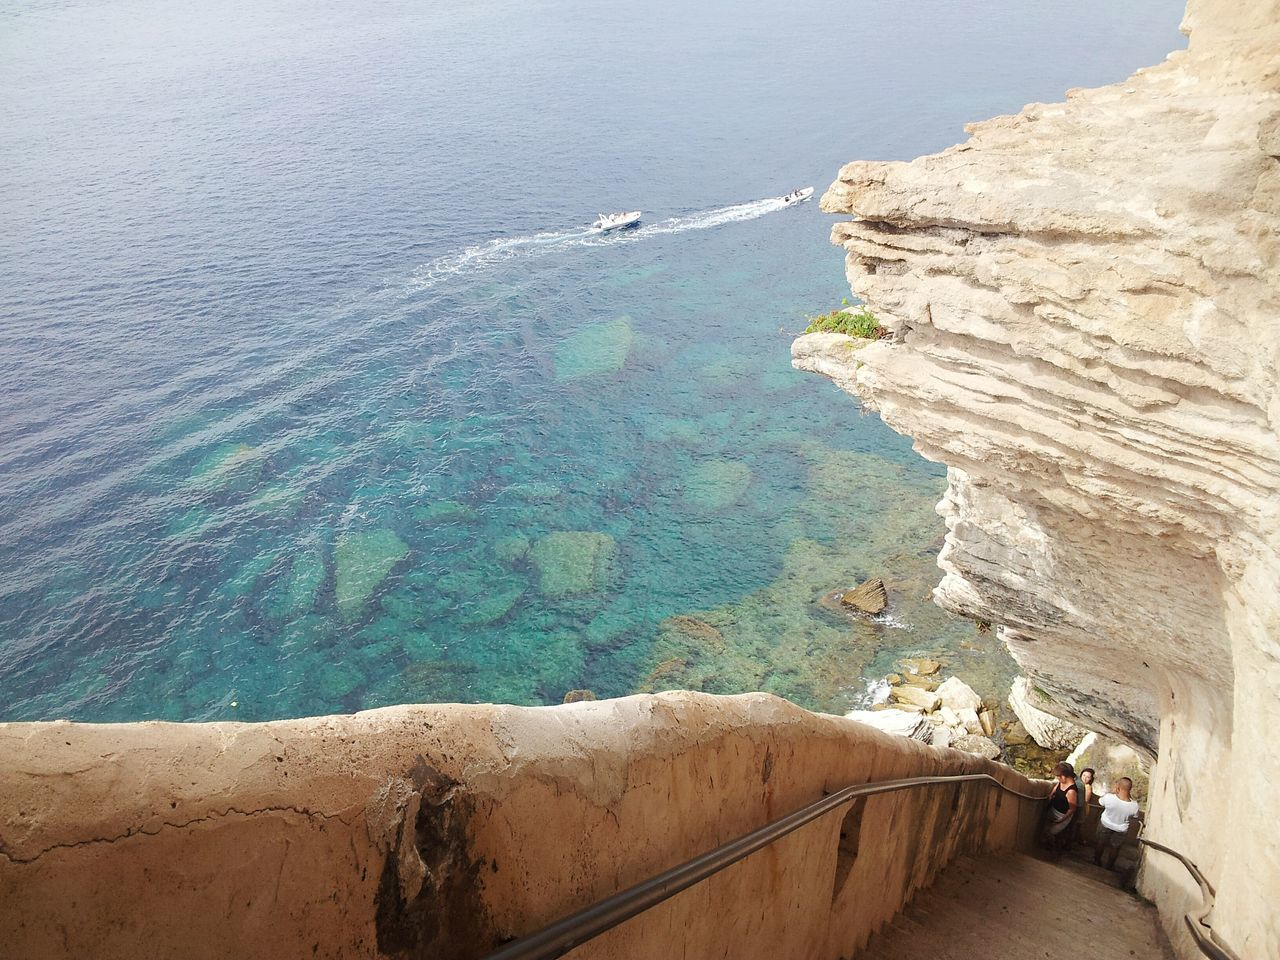 Sea Water Outdoors Tranquility Nature Solitude Remote Beauty In Nature Summer Scenics Bonifacio Amazing Amazing View Blue Beauty In Nature Boat Panorma Landscape Corsica Corse High Angle View Escalier Du Roi D'aragone Stair Stairway Stairs